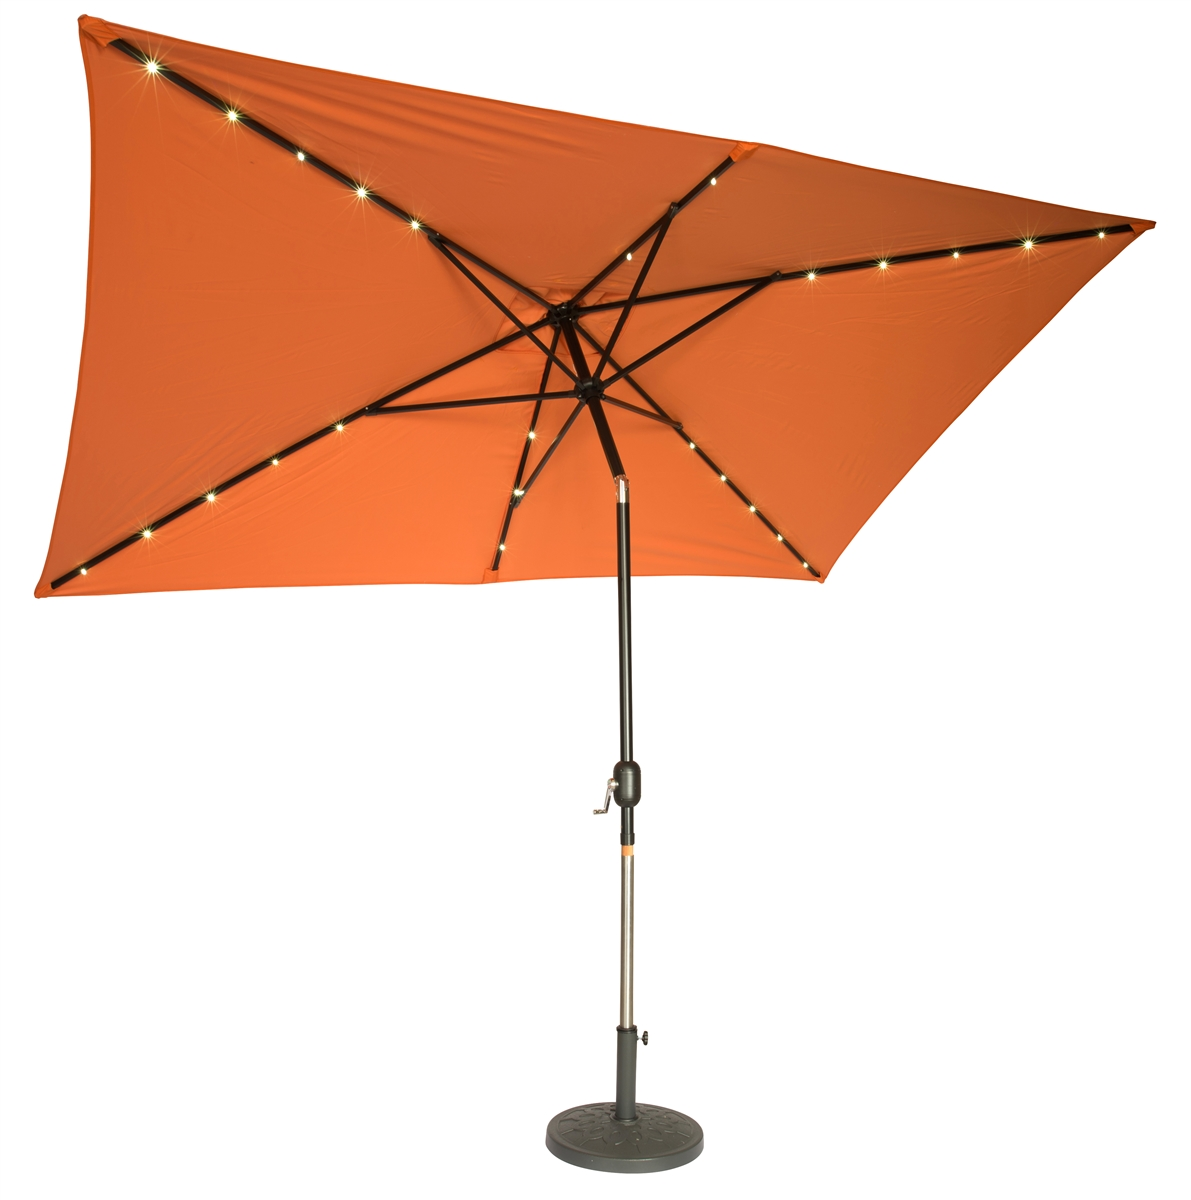 Elegant 10u0027 X 6.5u0027 Rectangular Solar Powered LED Lighted Patio Umbrella By  Trademark Innovations (Orange)